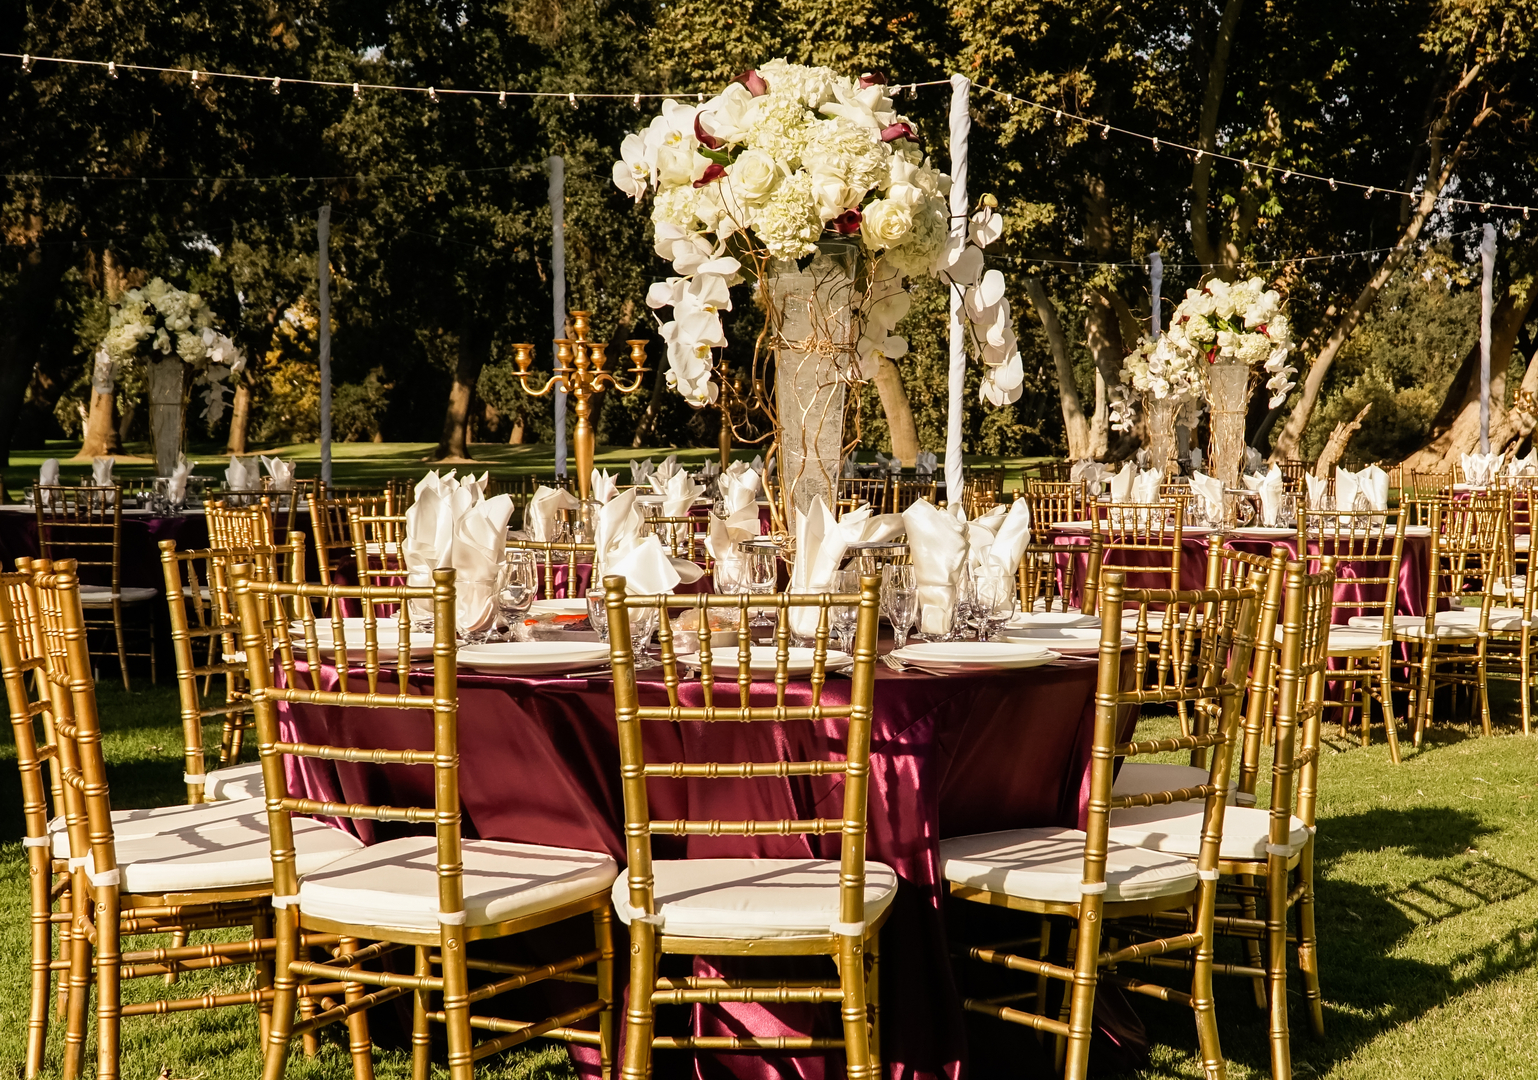 photo booth draping lighting table chairs in wedding and party